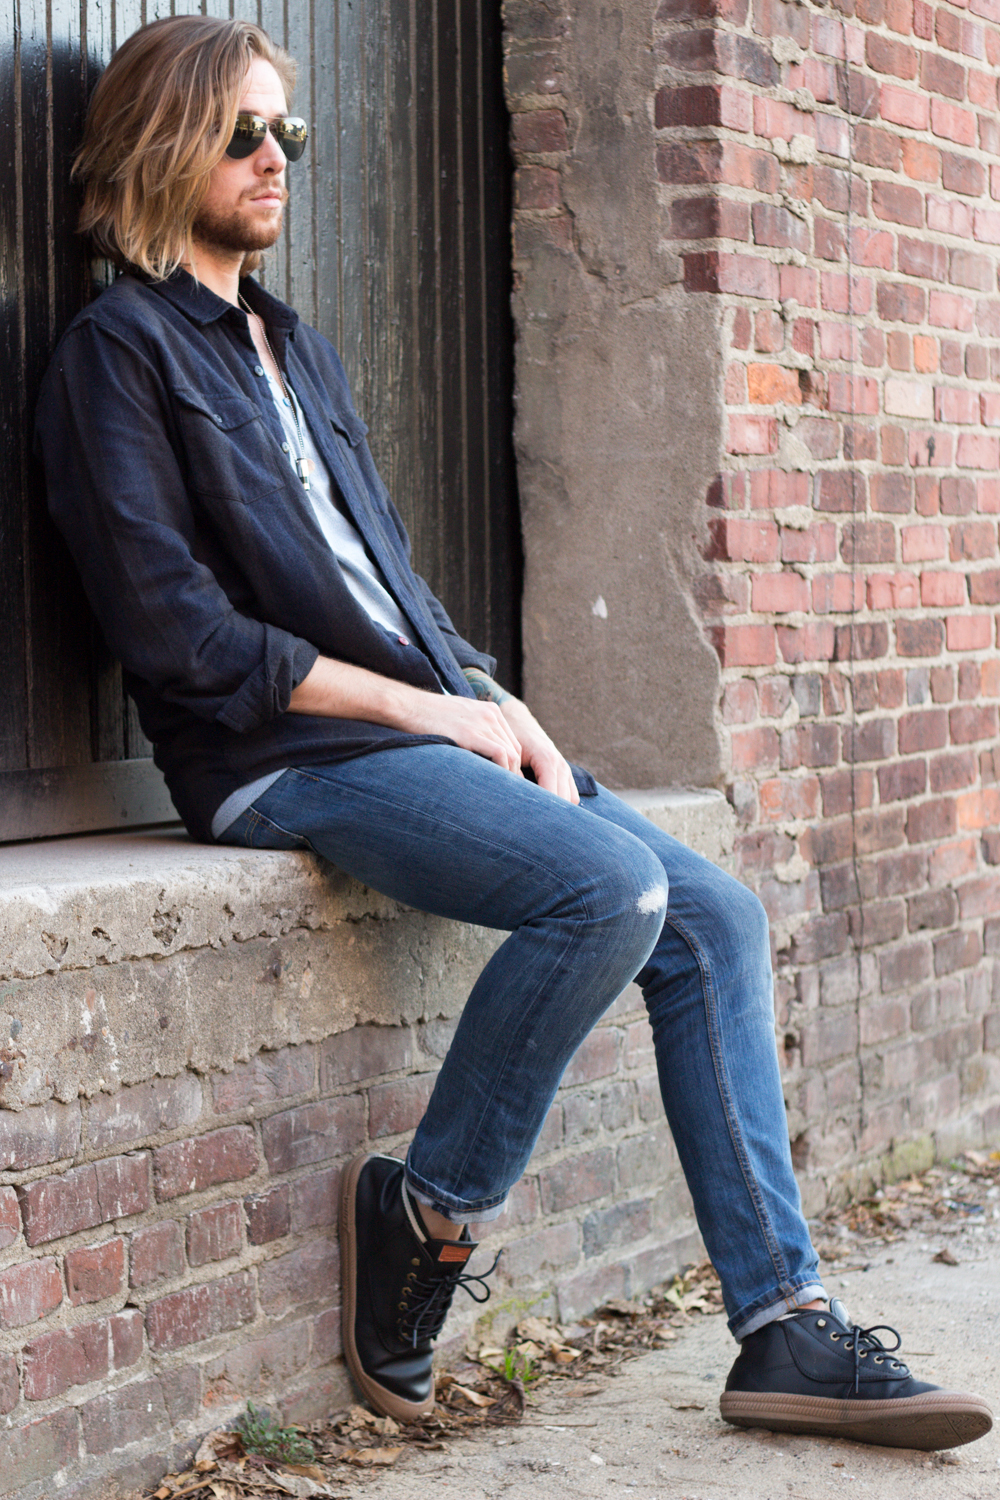 The Kentucky Gent, a Louisville, Kentucky men's fashion and life style blogger, in Katin Plaid Shirt, BDG Henley Tee from Urban Outfitters, Levi's 511 Jeans, Volley High Top Sneakers, and Ray-Ban Aviator Sunglasses.